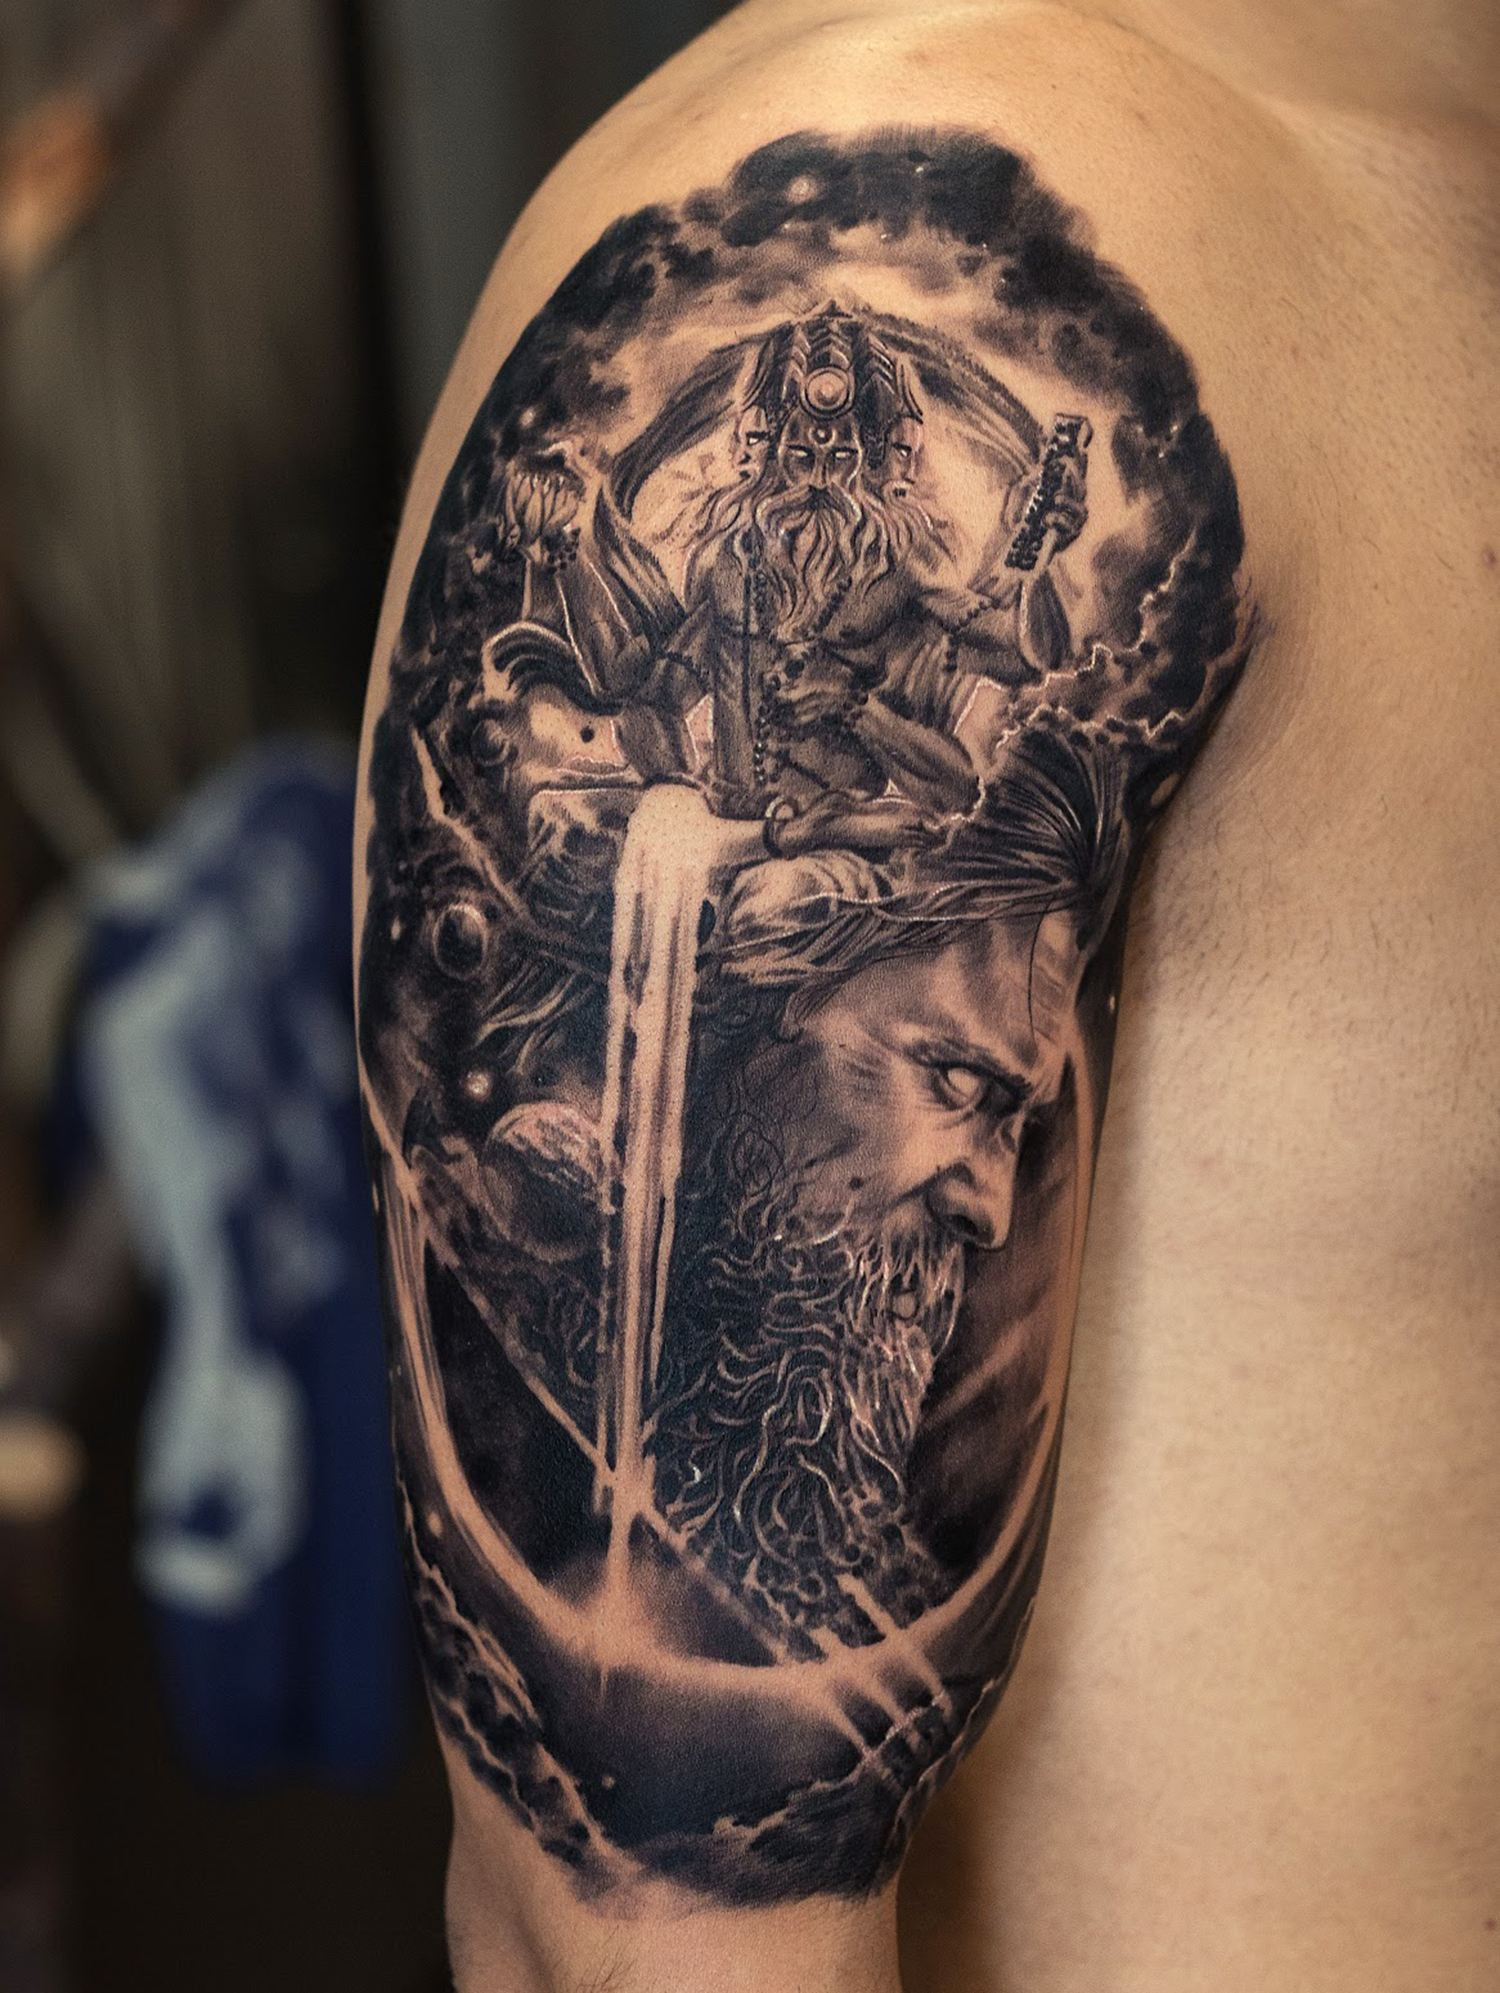 black and grey spiritual tattoo by Sunny Bhanushali